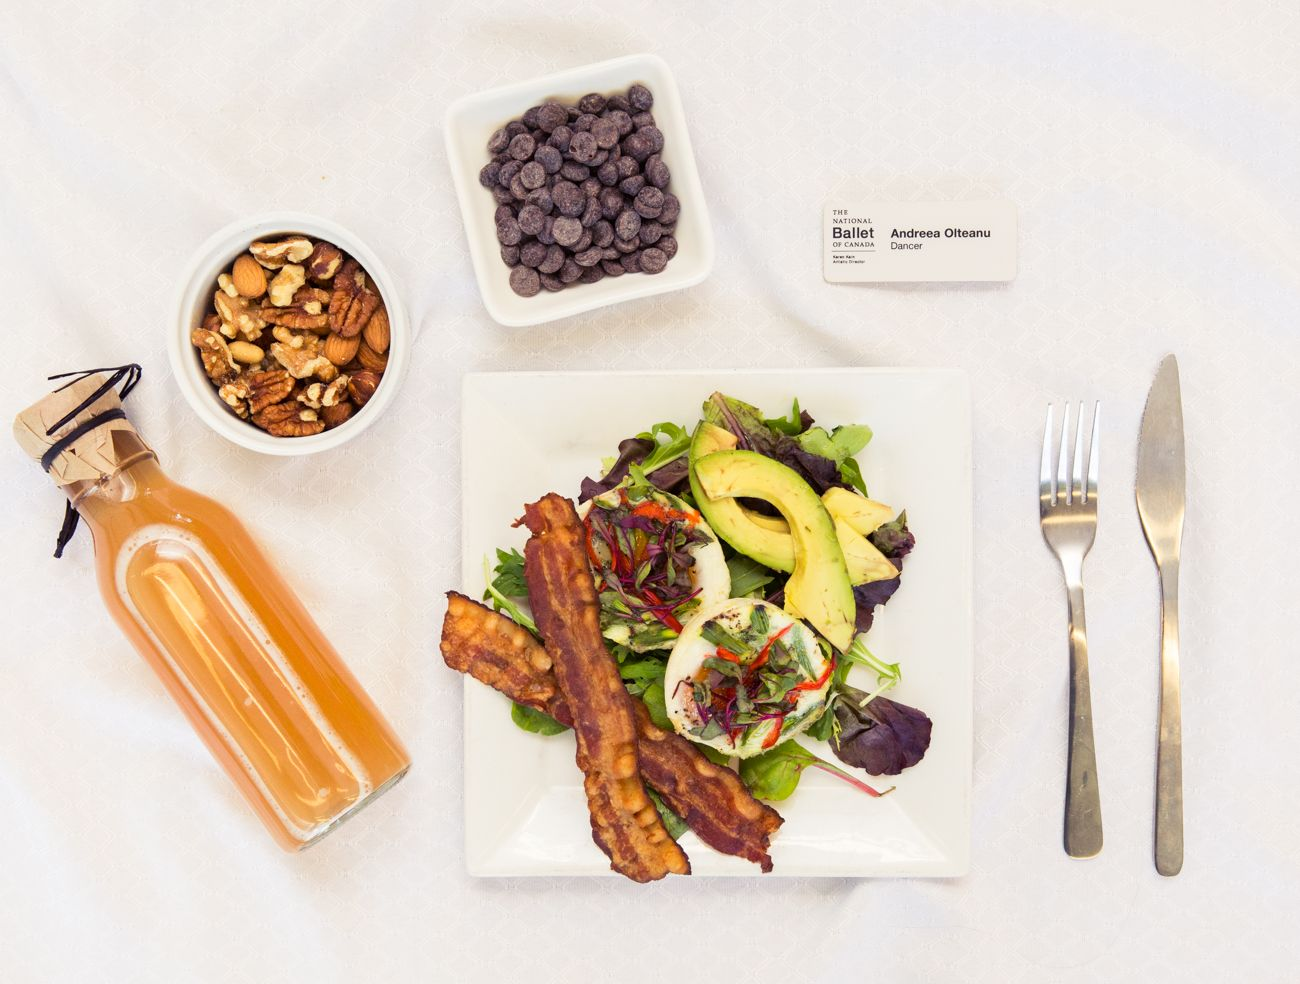 Forget the Black Swan clichés. Here are nutritious (& delicious) meals dancers rely on for fuel.